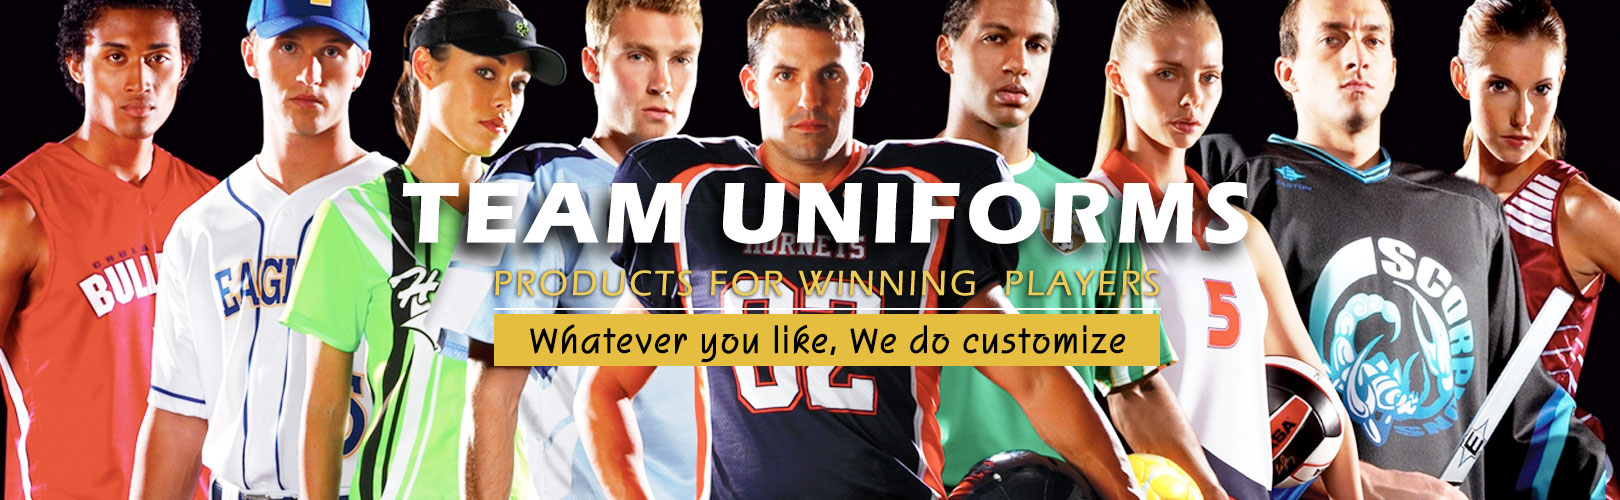 Manufacturers and Exporters of Customized Team Uniforms